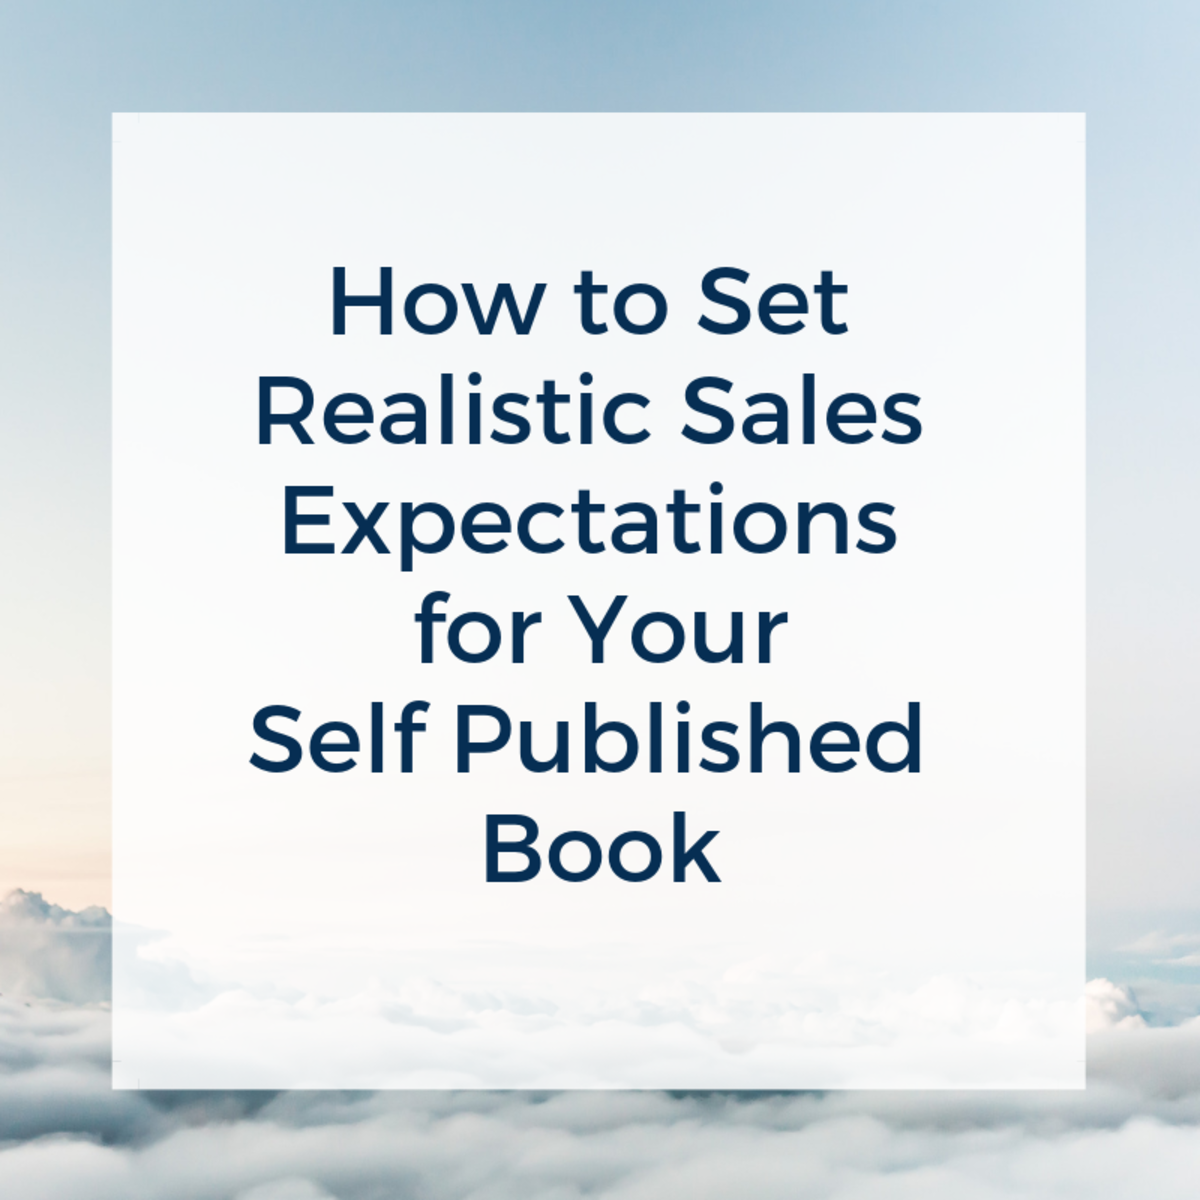 How to Set Realistic Sales Expectations for Your Self Published Book